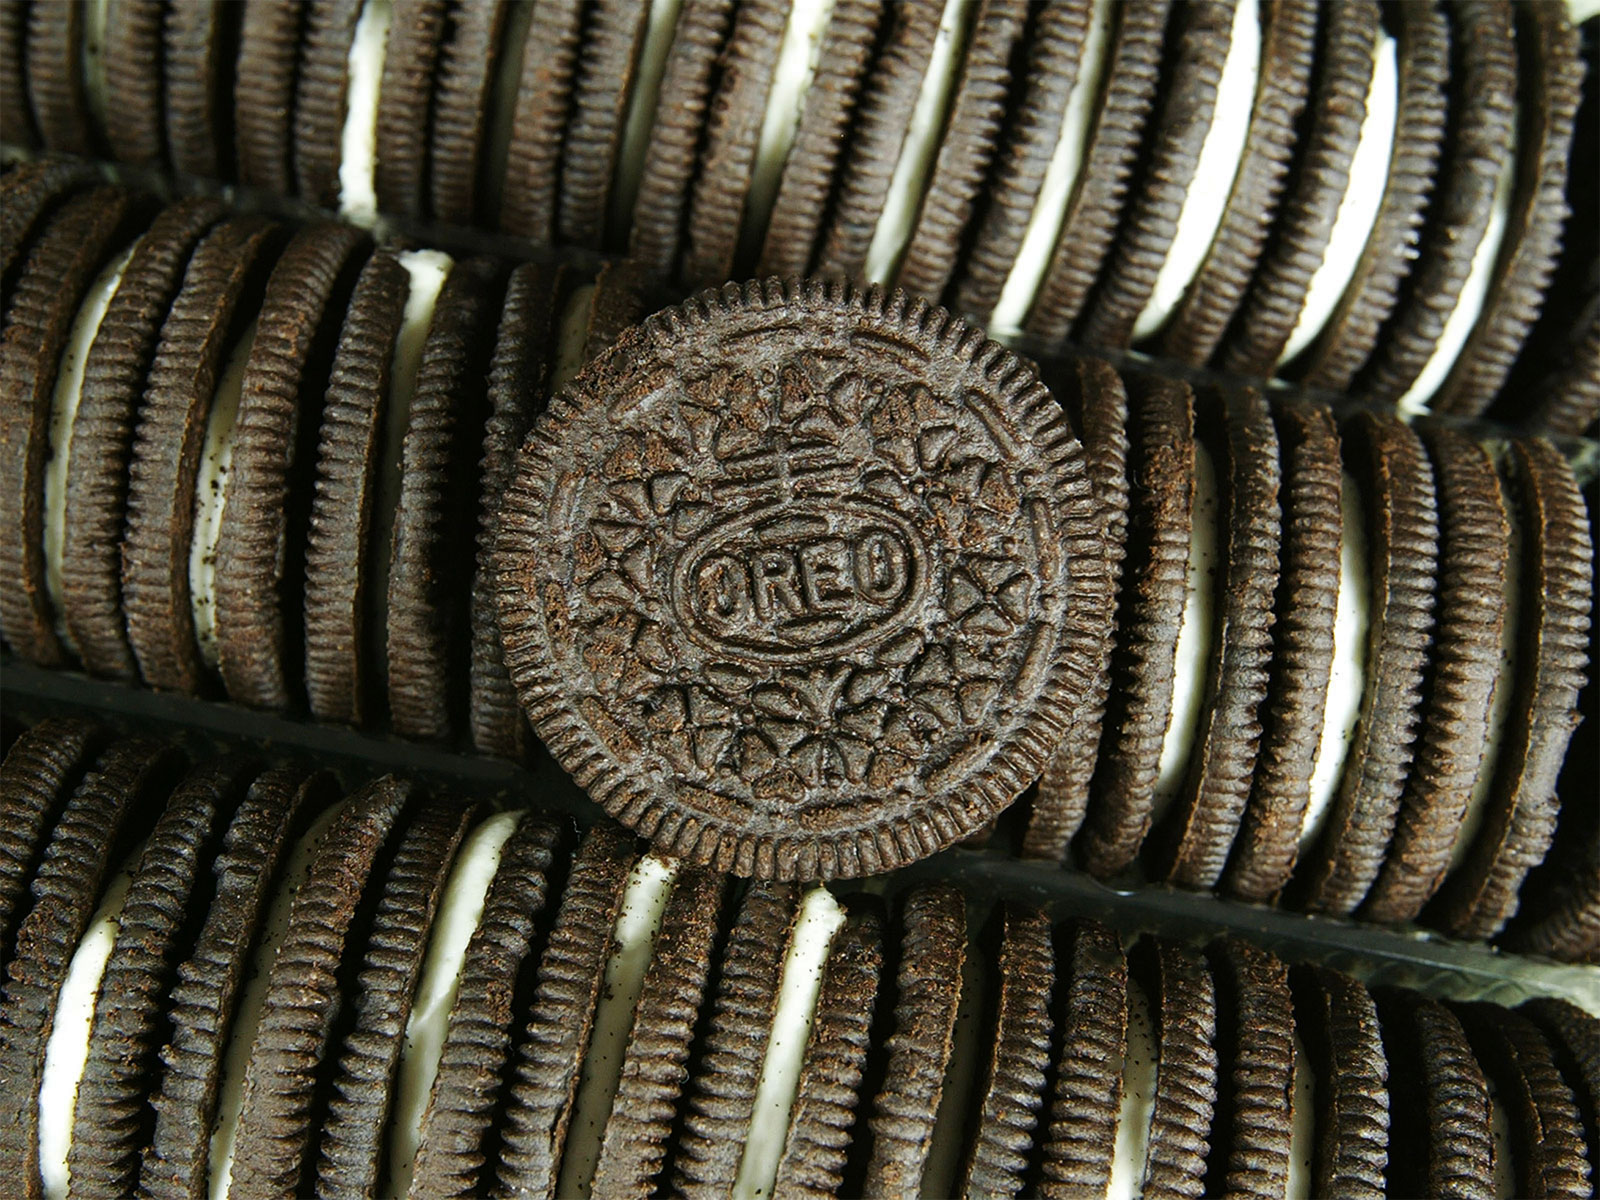 mystery flavored oreo contest